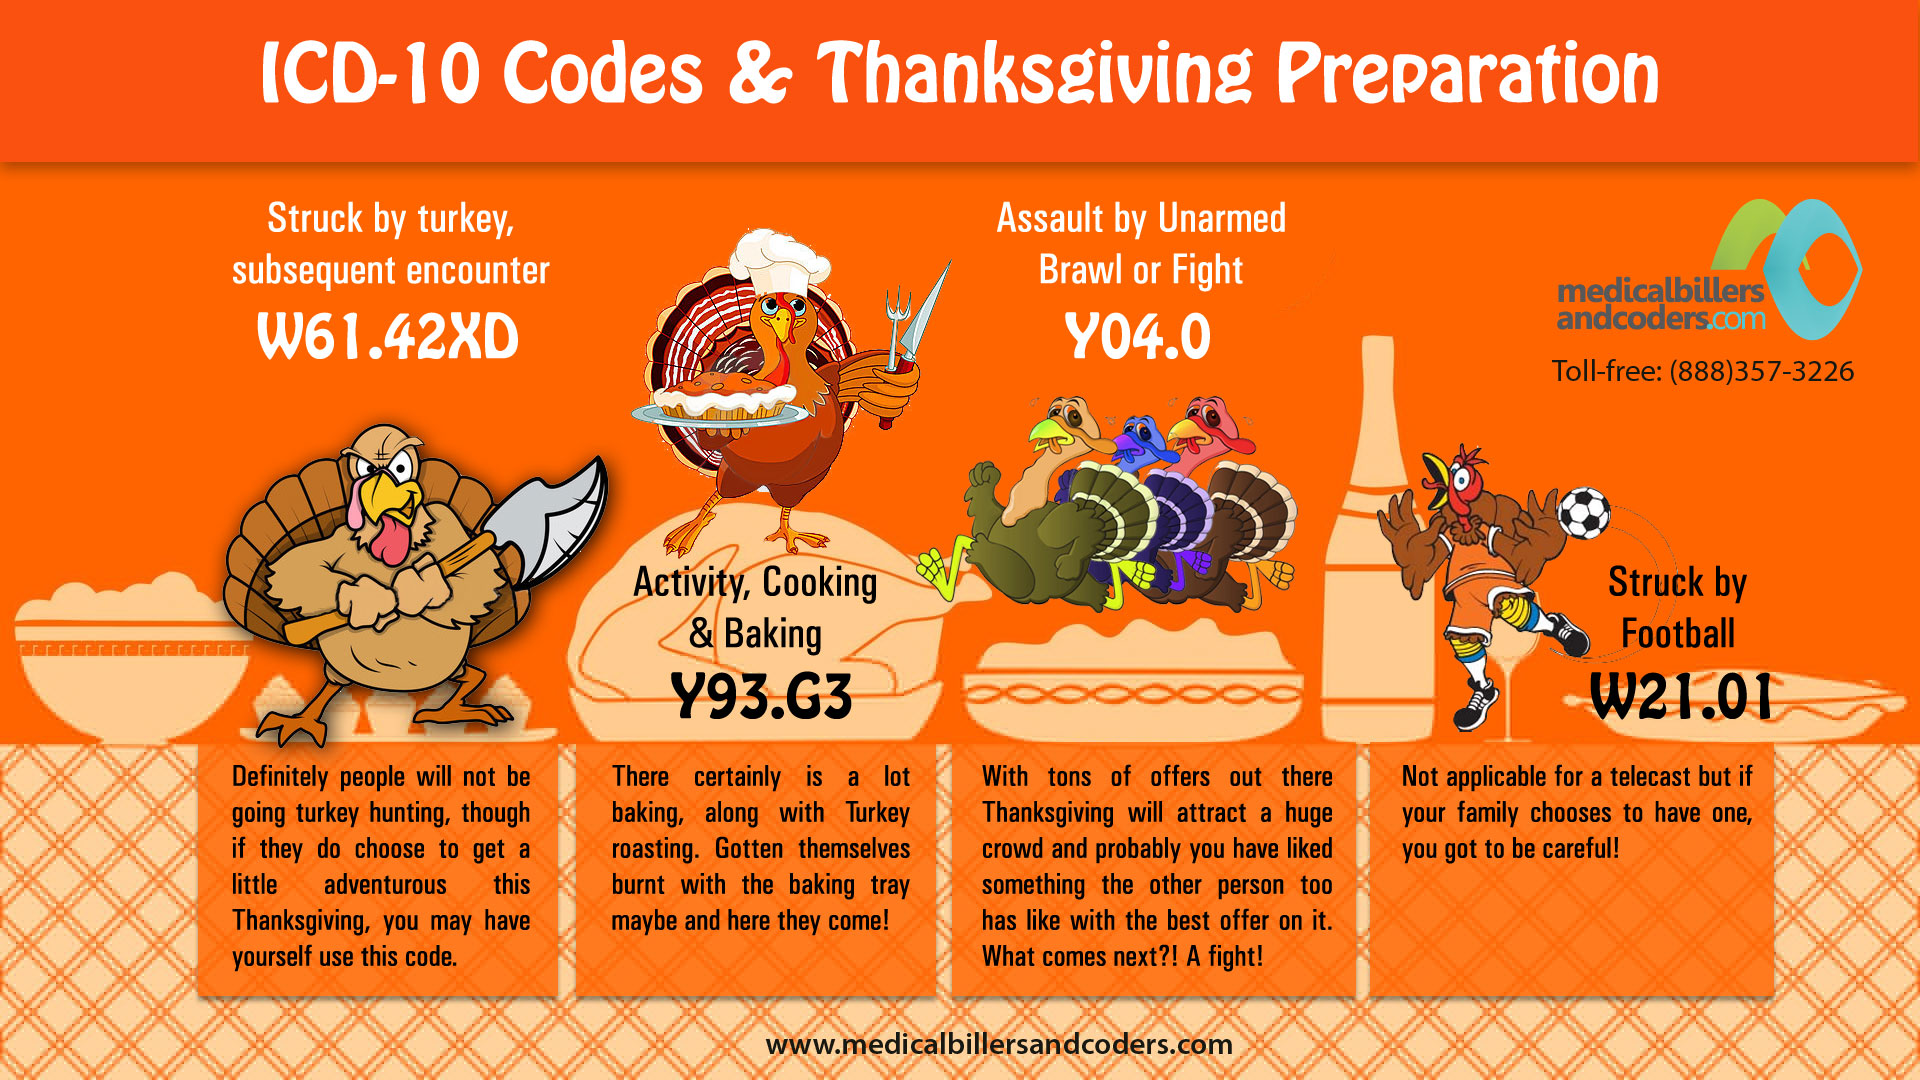 thanksgiving-icd-10-codes